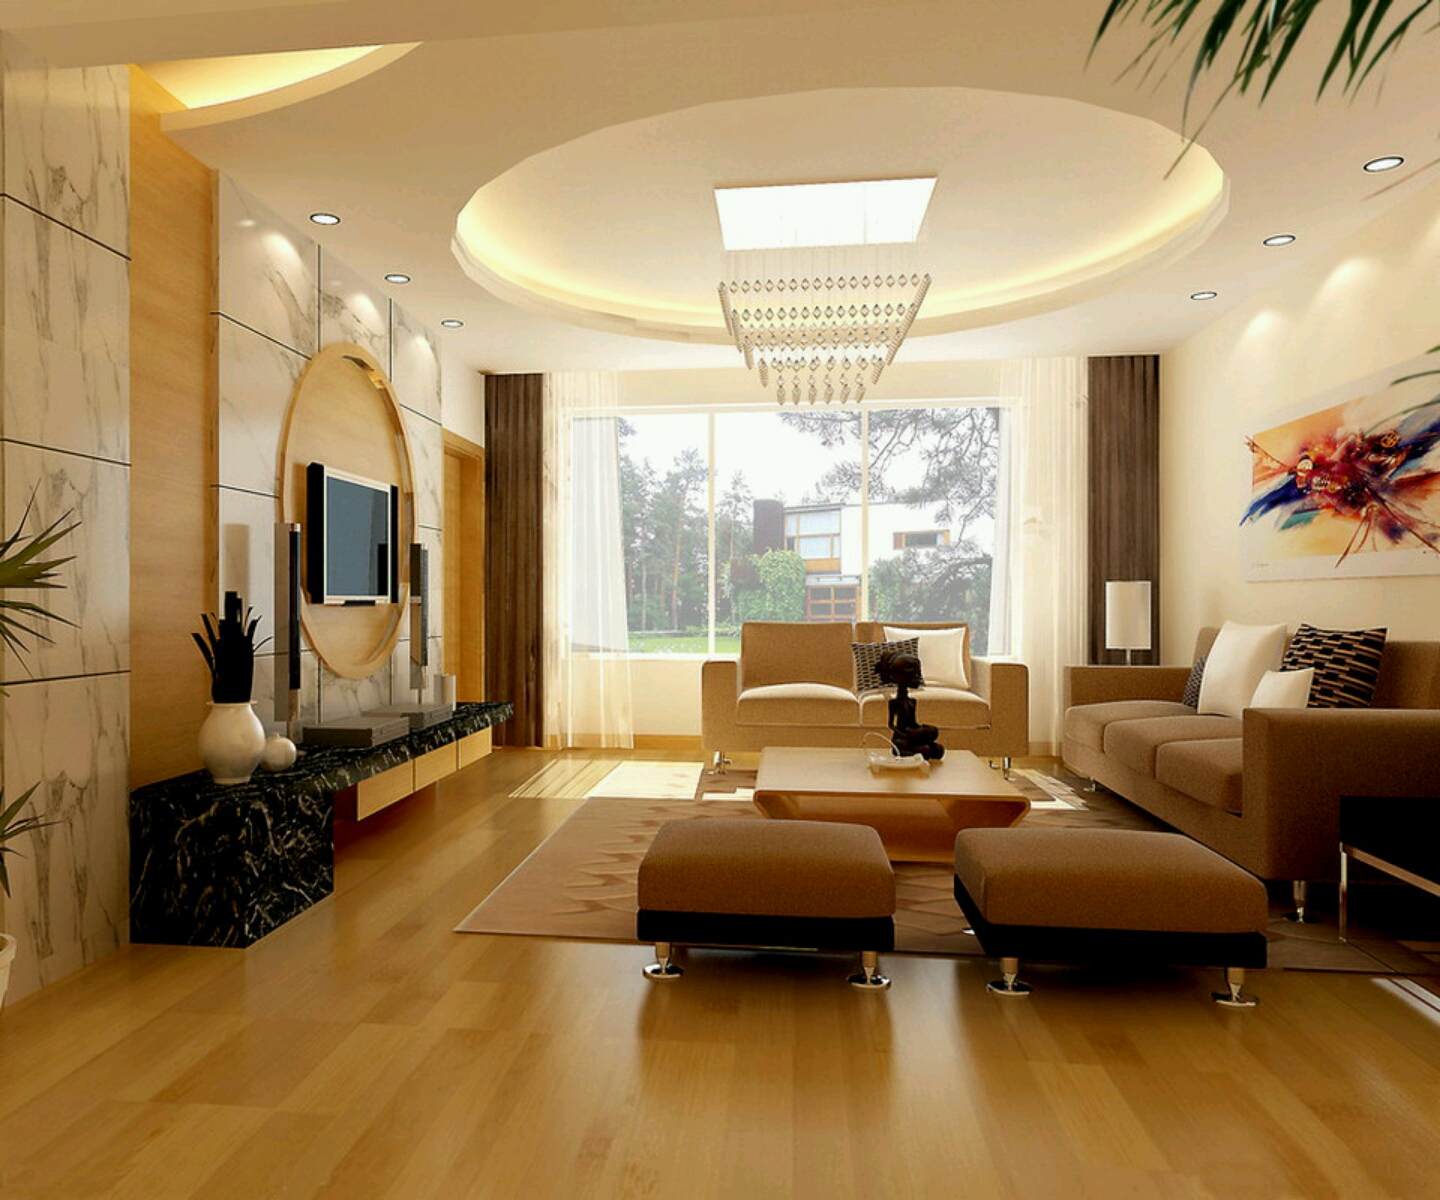 Modern interior decoration living rooms ceiling designs Inside house living room